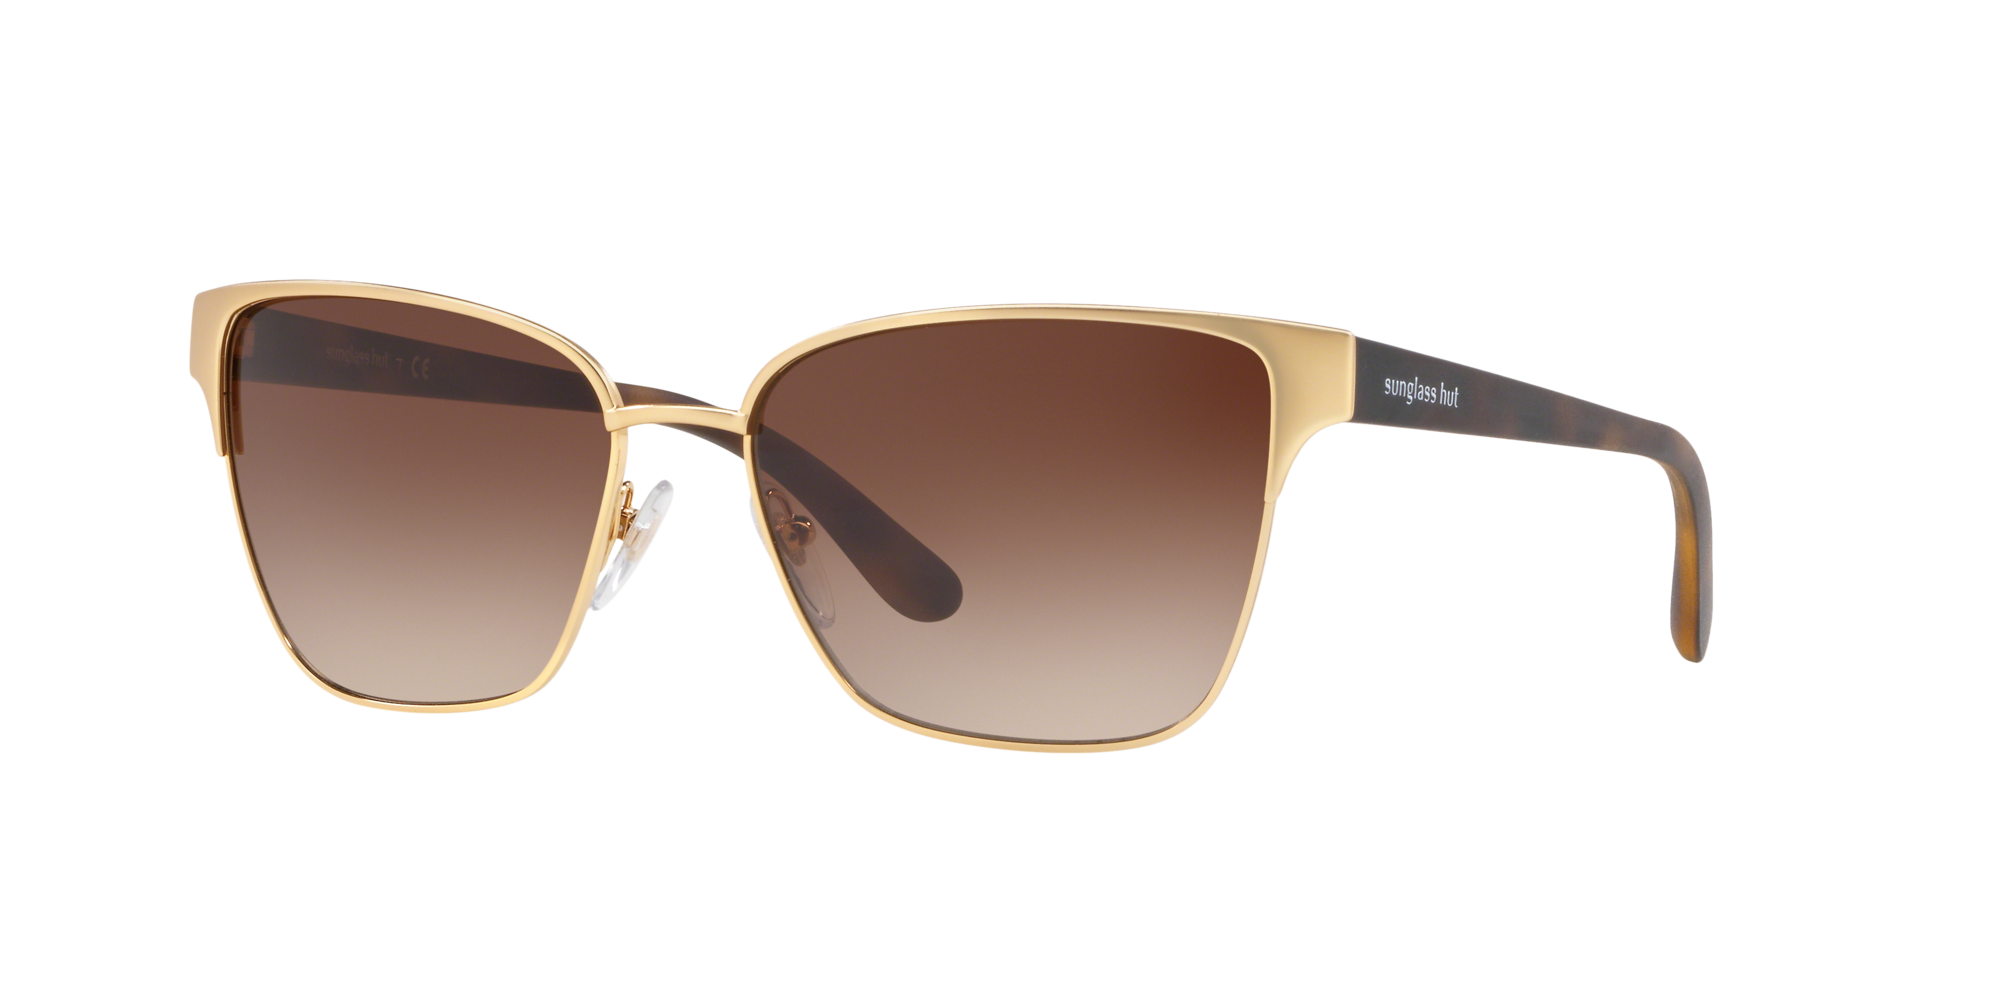 Coleccion Sunglass Hut Unisex  HU1007 -  Frame color: Oro, Lens color: Marron, Size 58-17/140